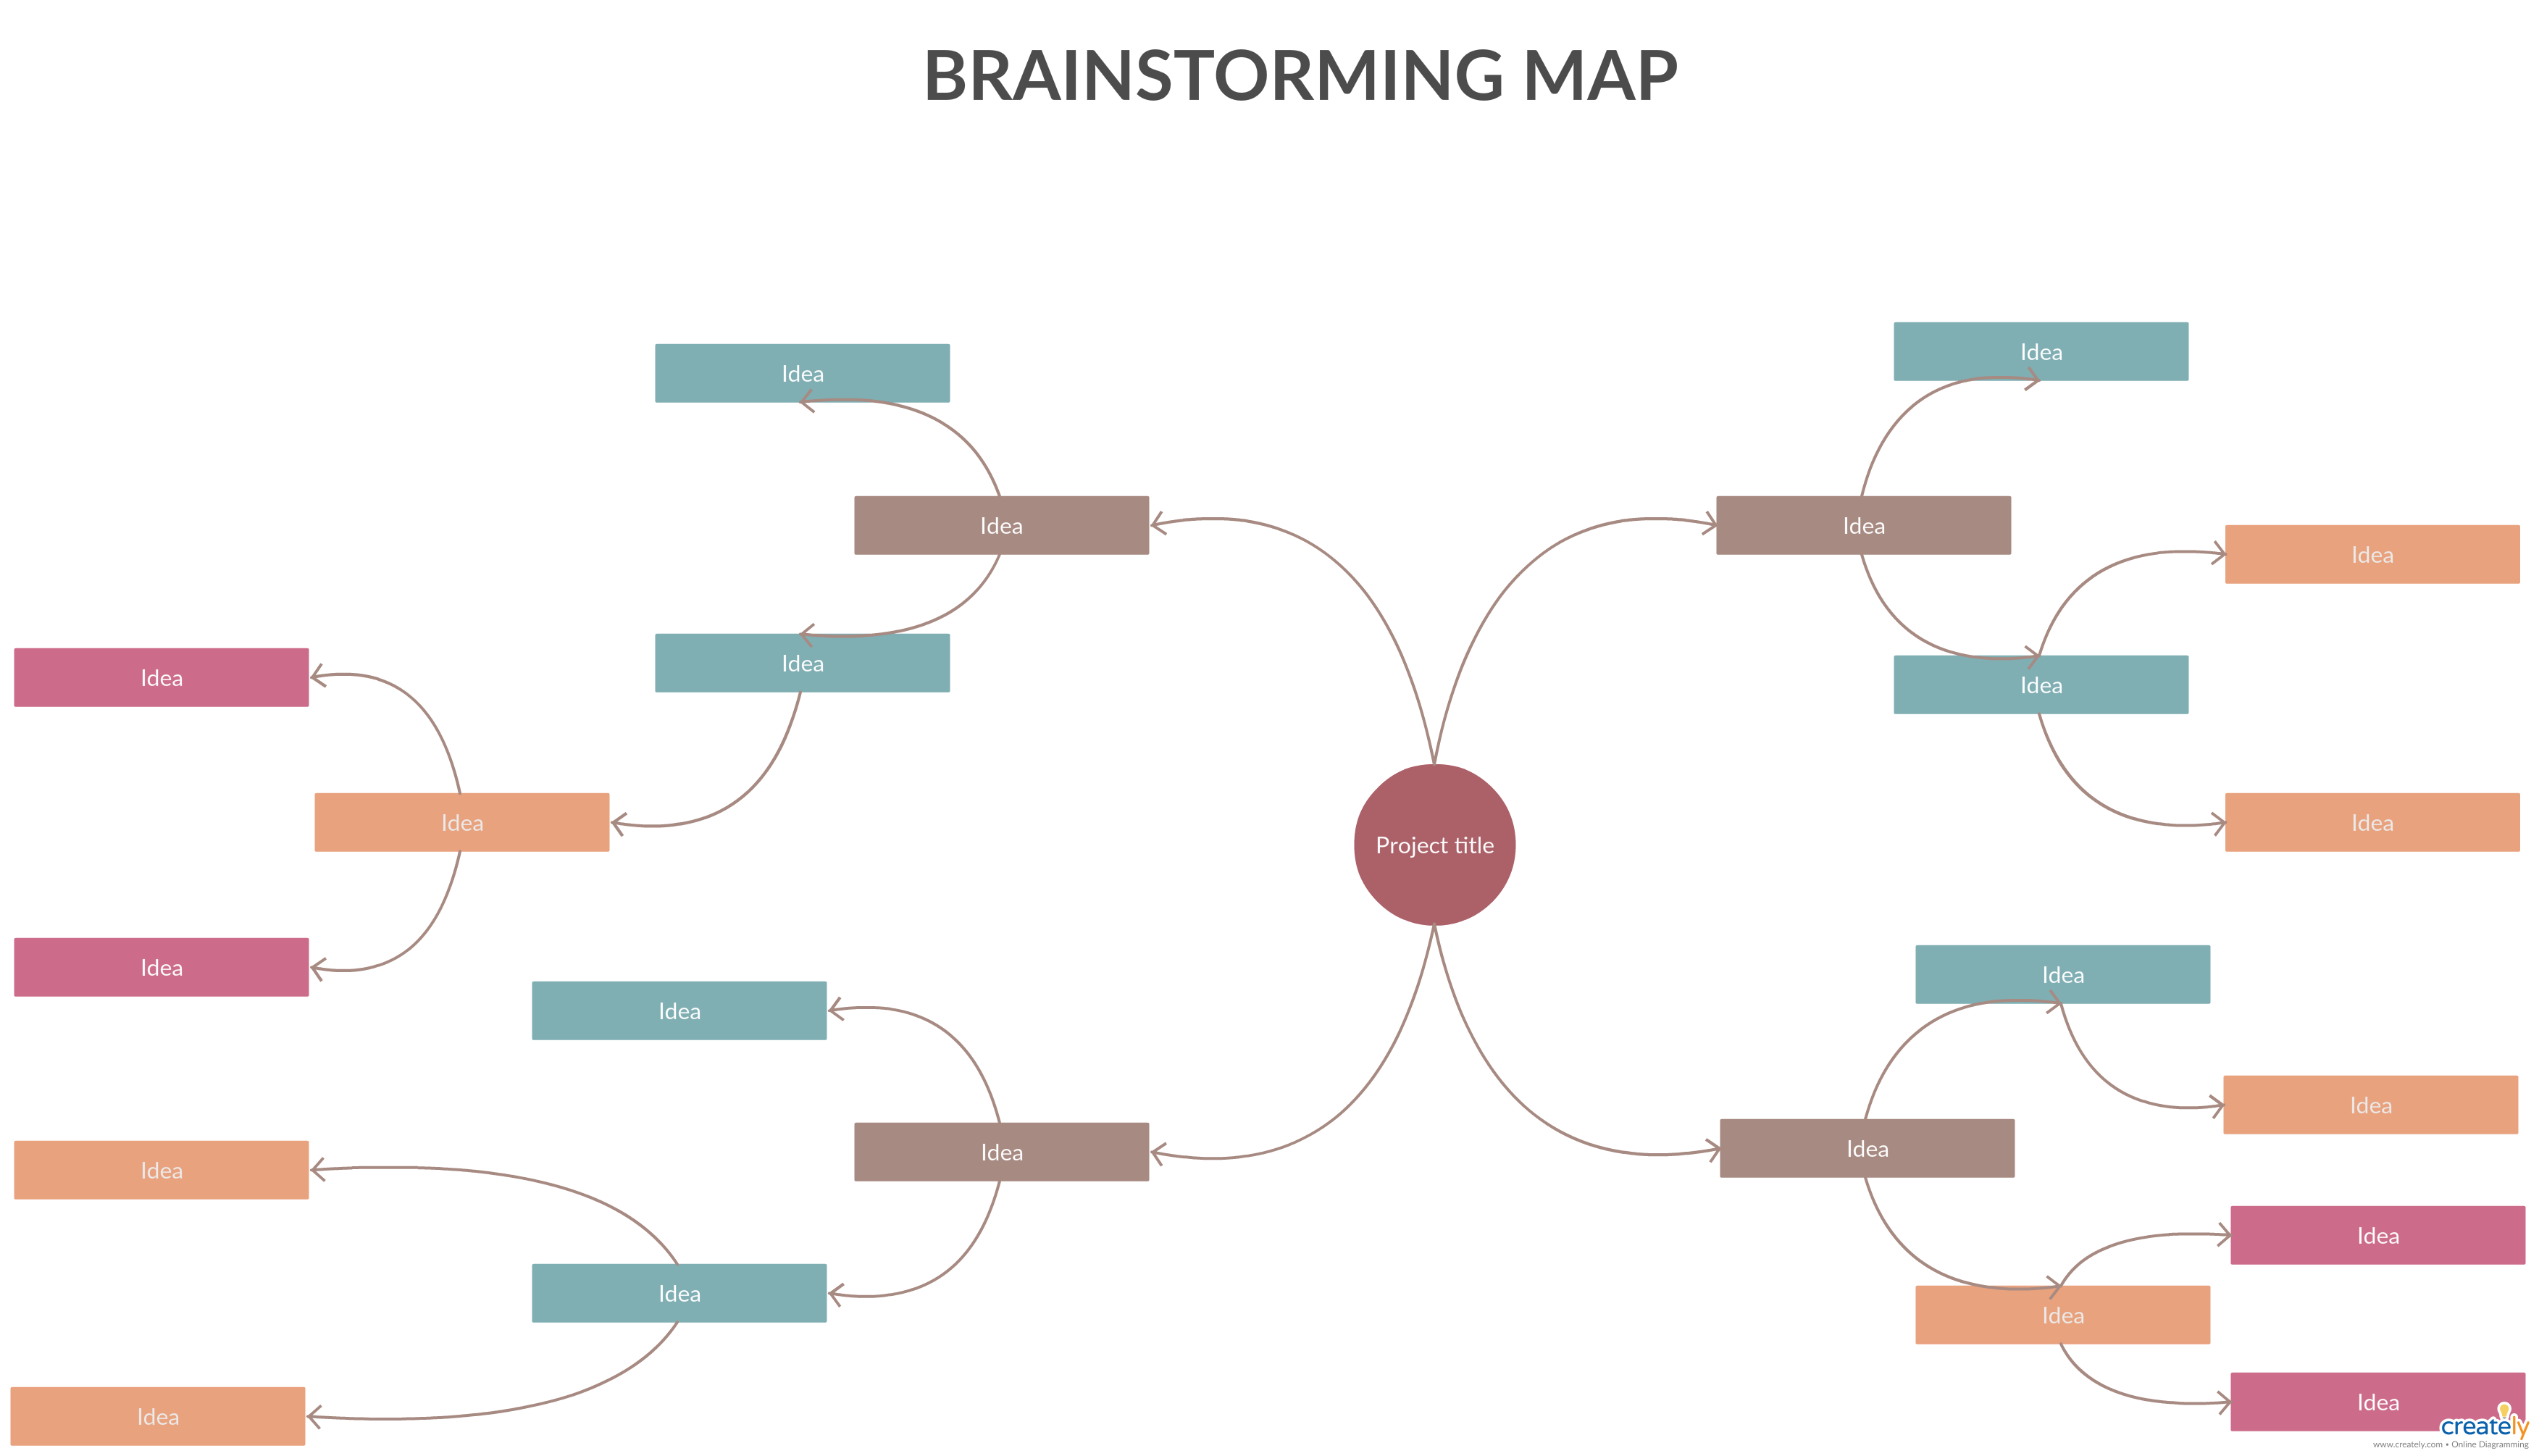 Brainstorming Map